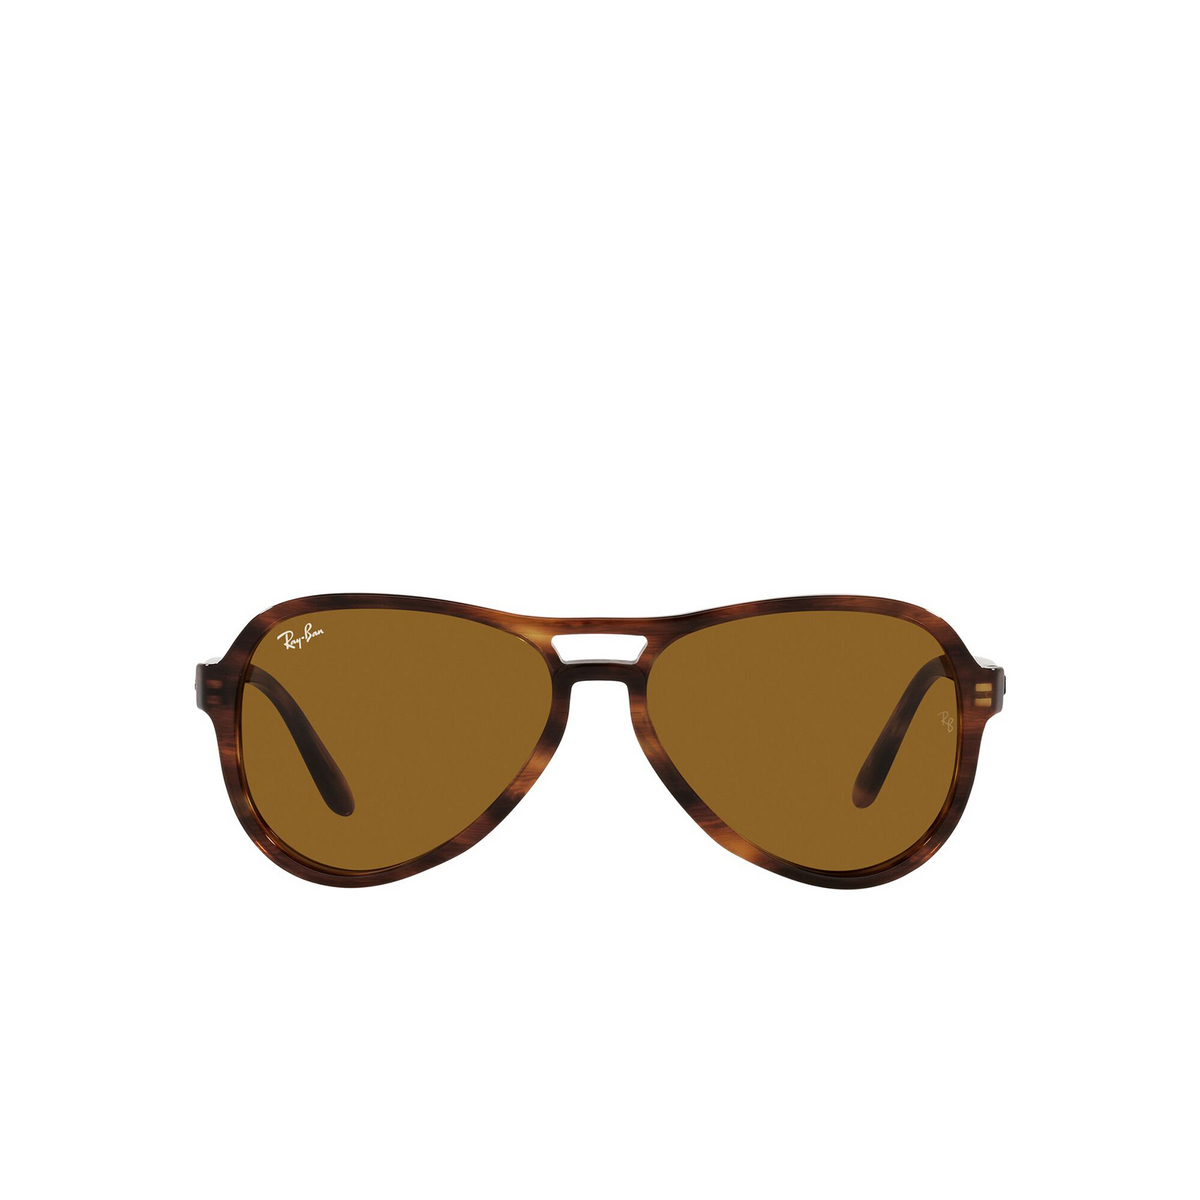 Ray-Ban® Aviator Sunglasses: Vagabond RB4355 color Striped Havana 954/33 - front view.